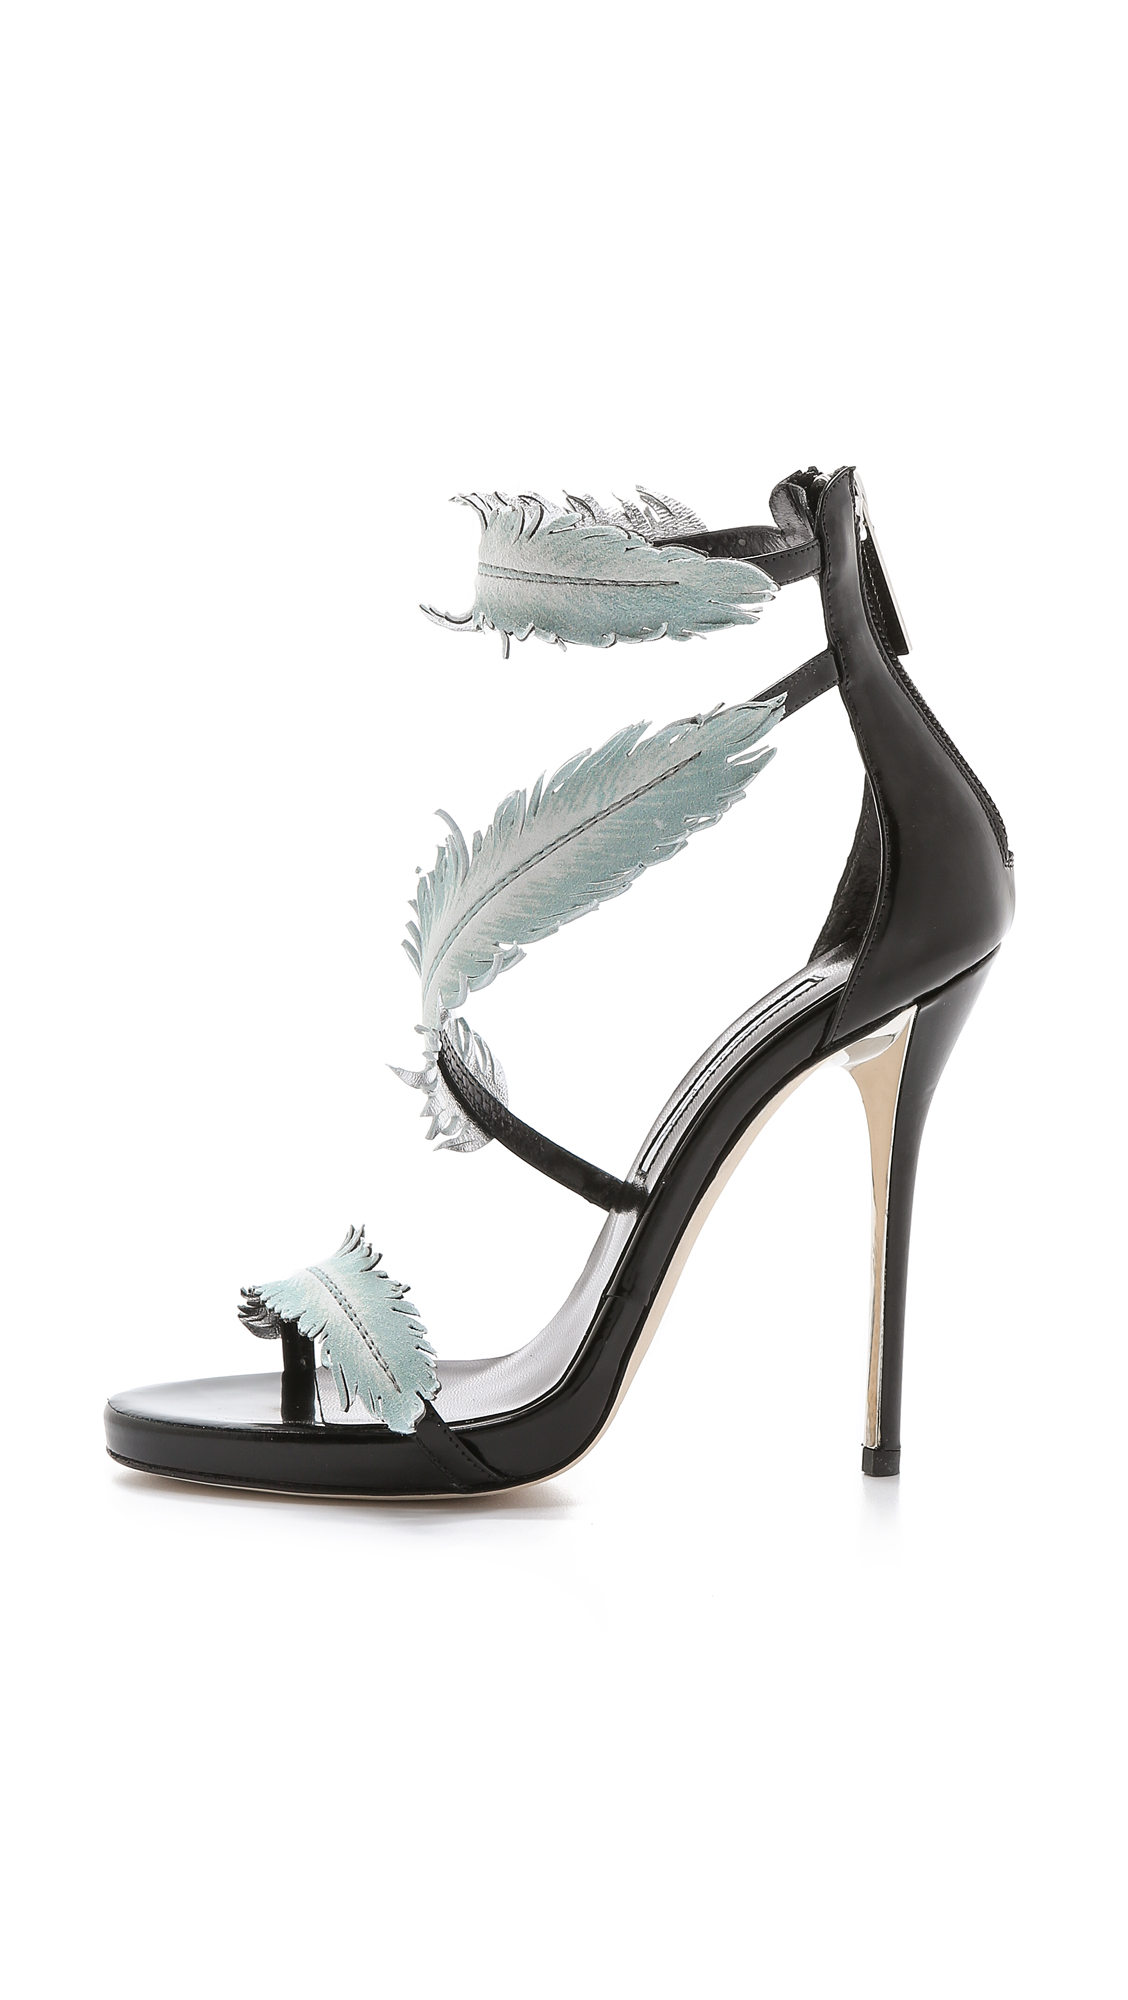 Feathered stilettos